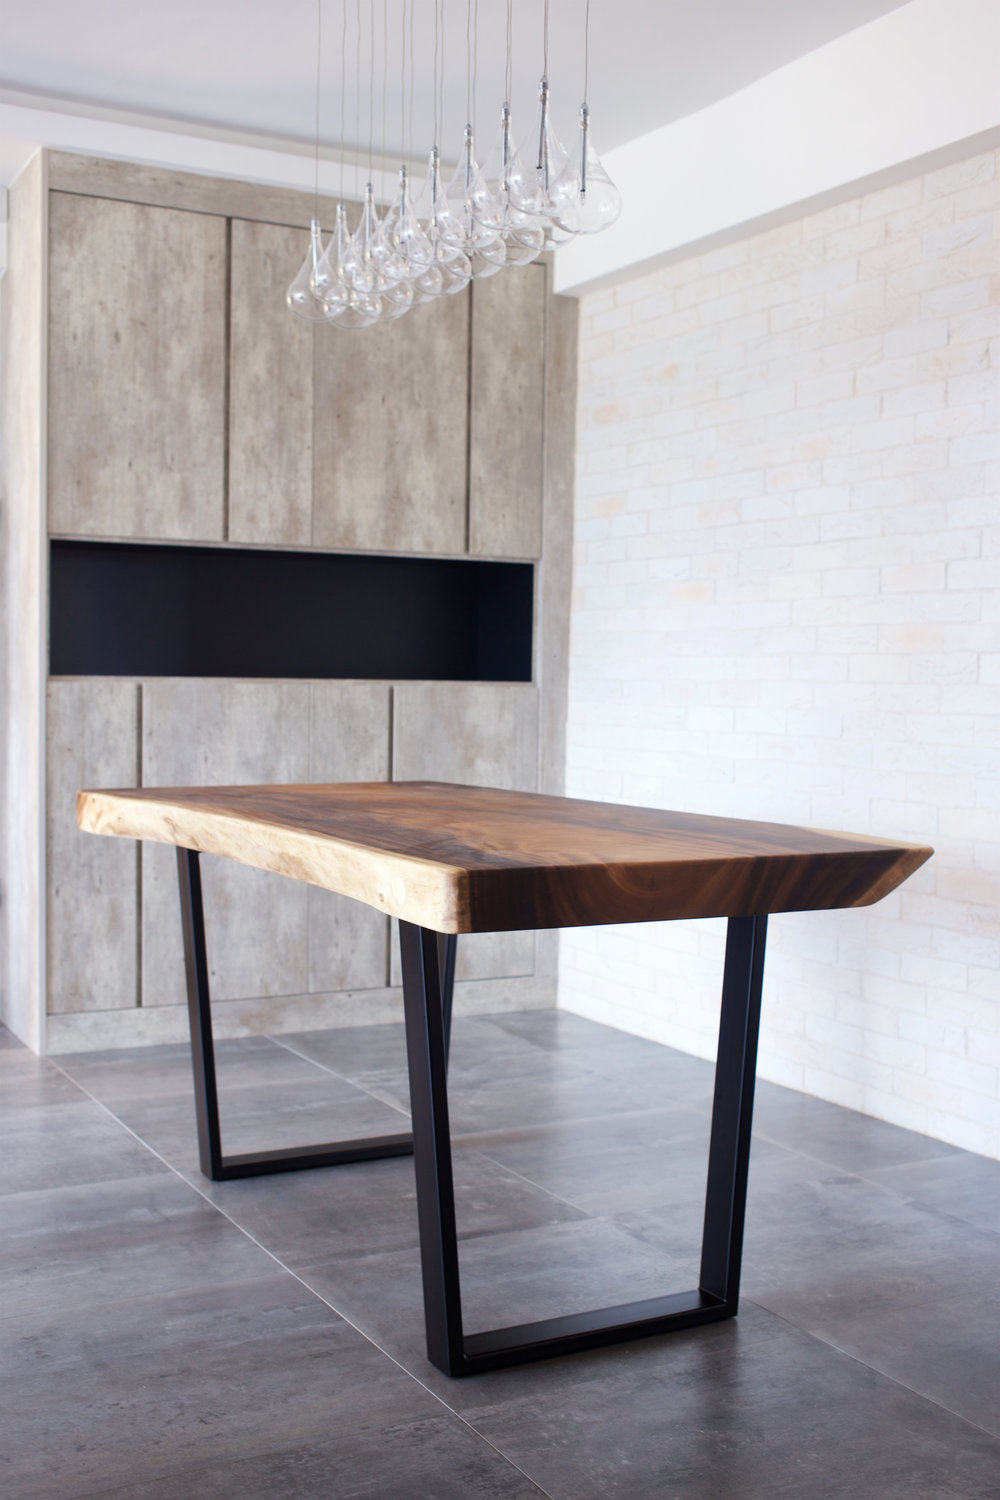 Suar Wood with Metal Legs Dining Table // Herman Furniture Singapore.jpg